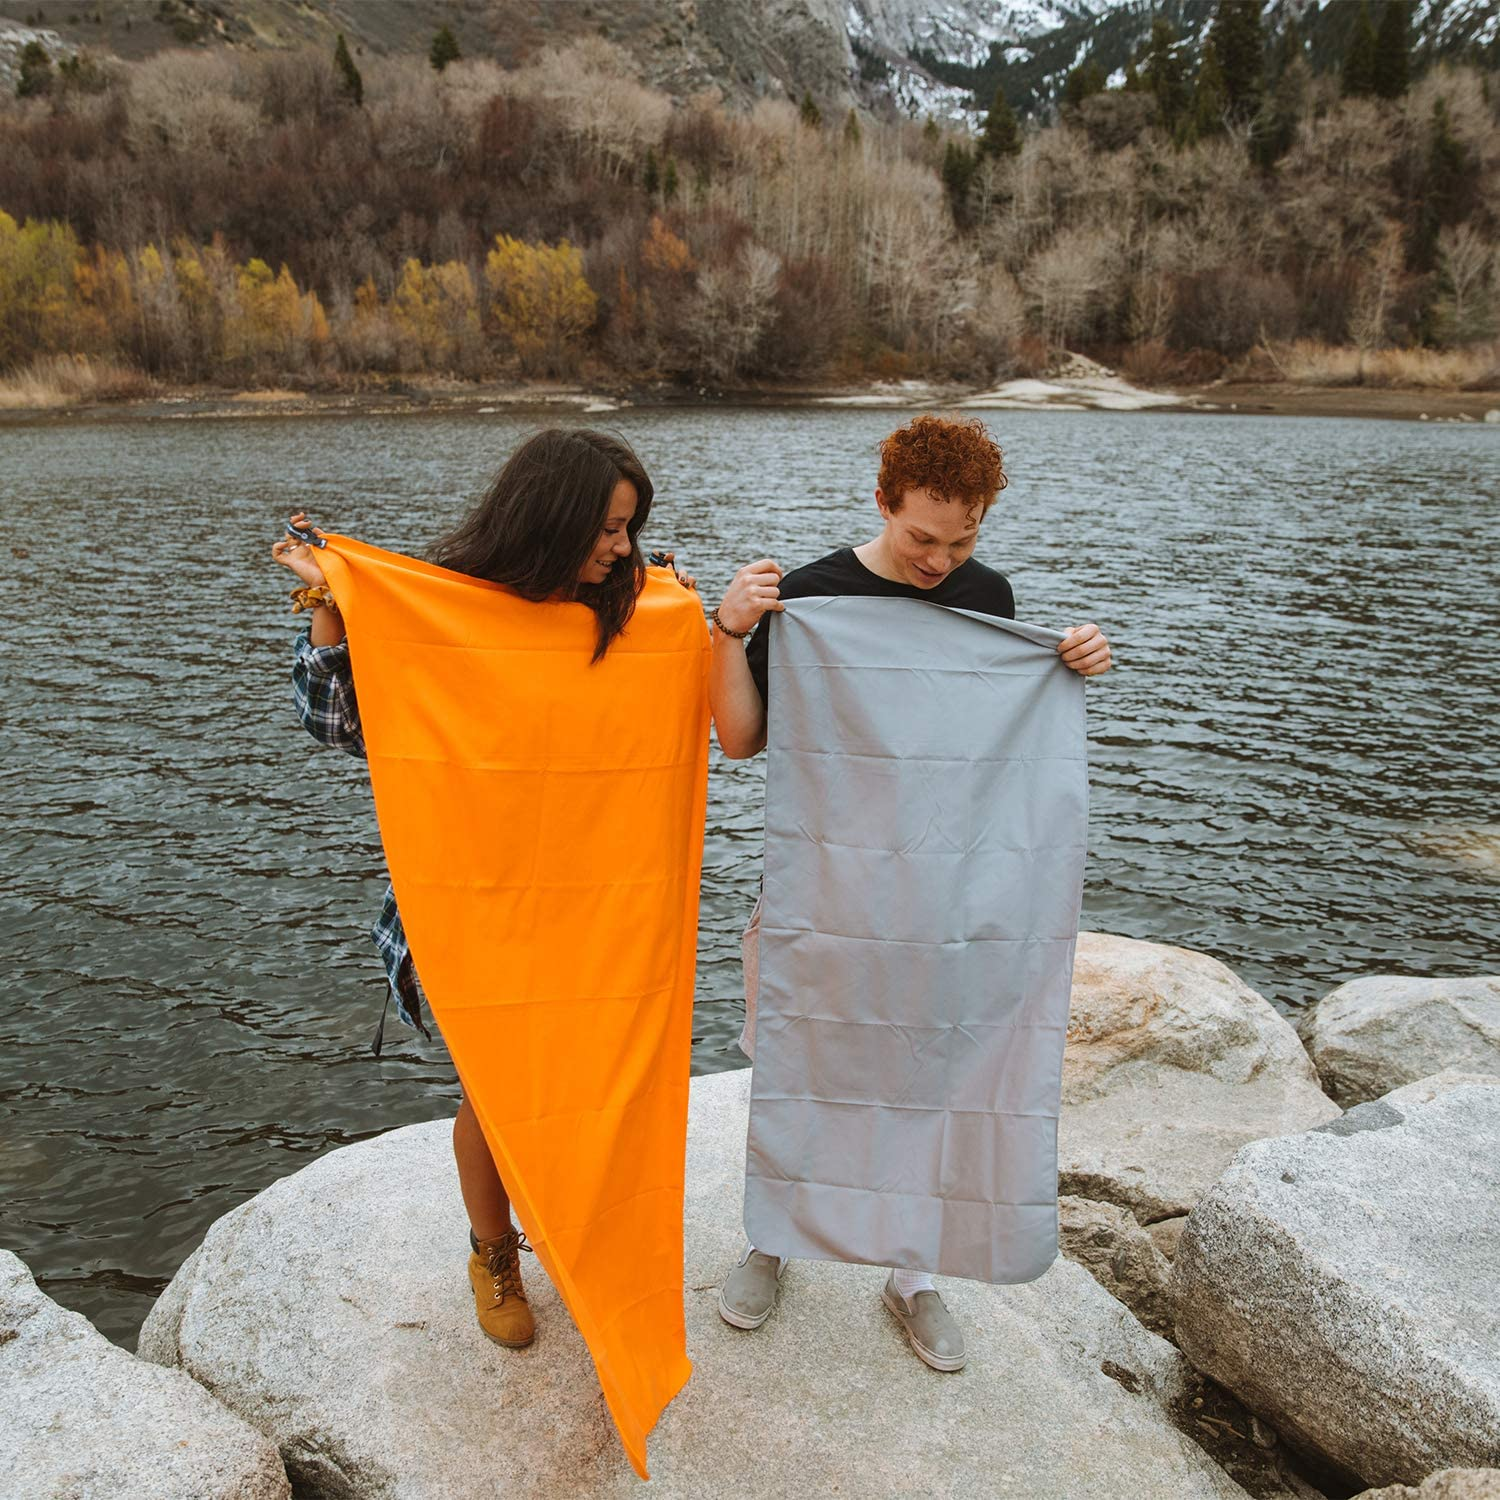 Wildhorn Microlite Travel Towel Set - Microfiber Quick Dry Towel Bundle for Camping, Hiking & Backpacking : Sports & Outdoors